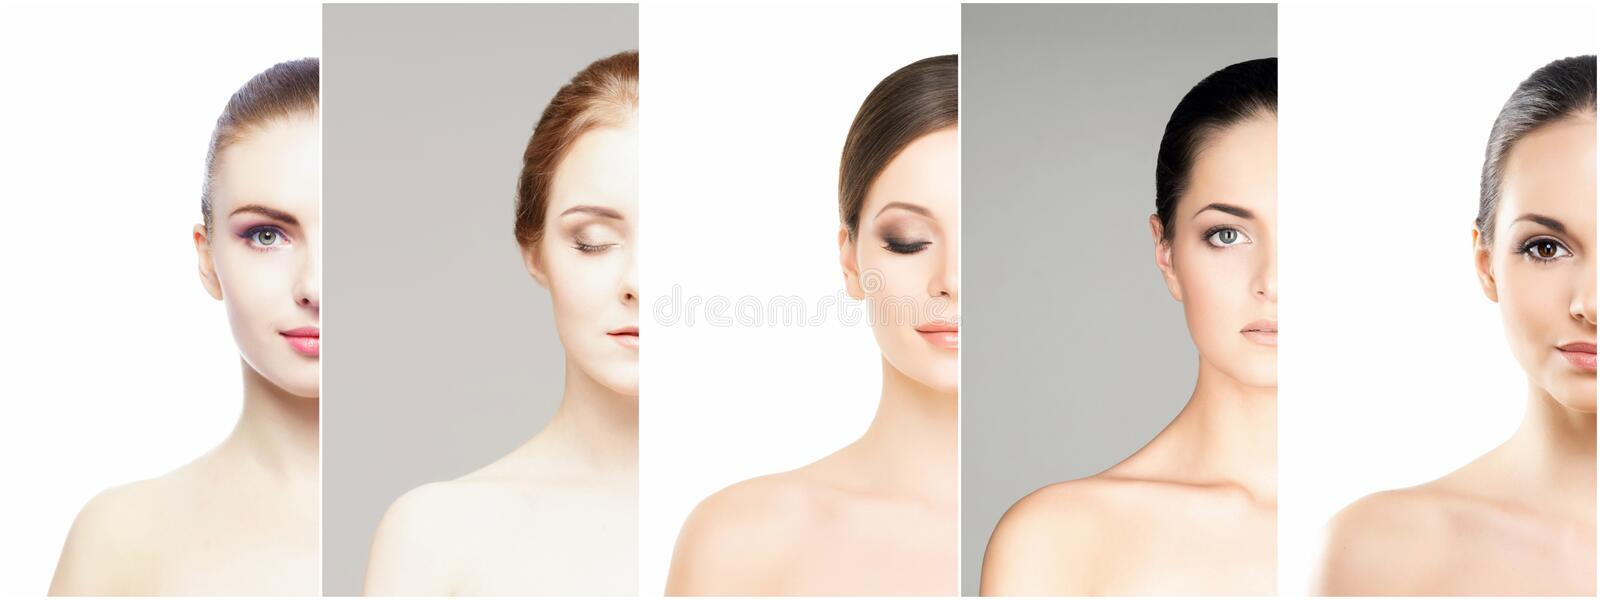 Collage of different portraits of young women in makeup stock photography